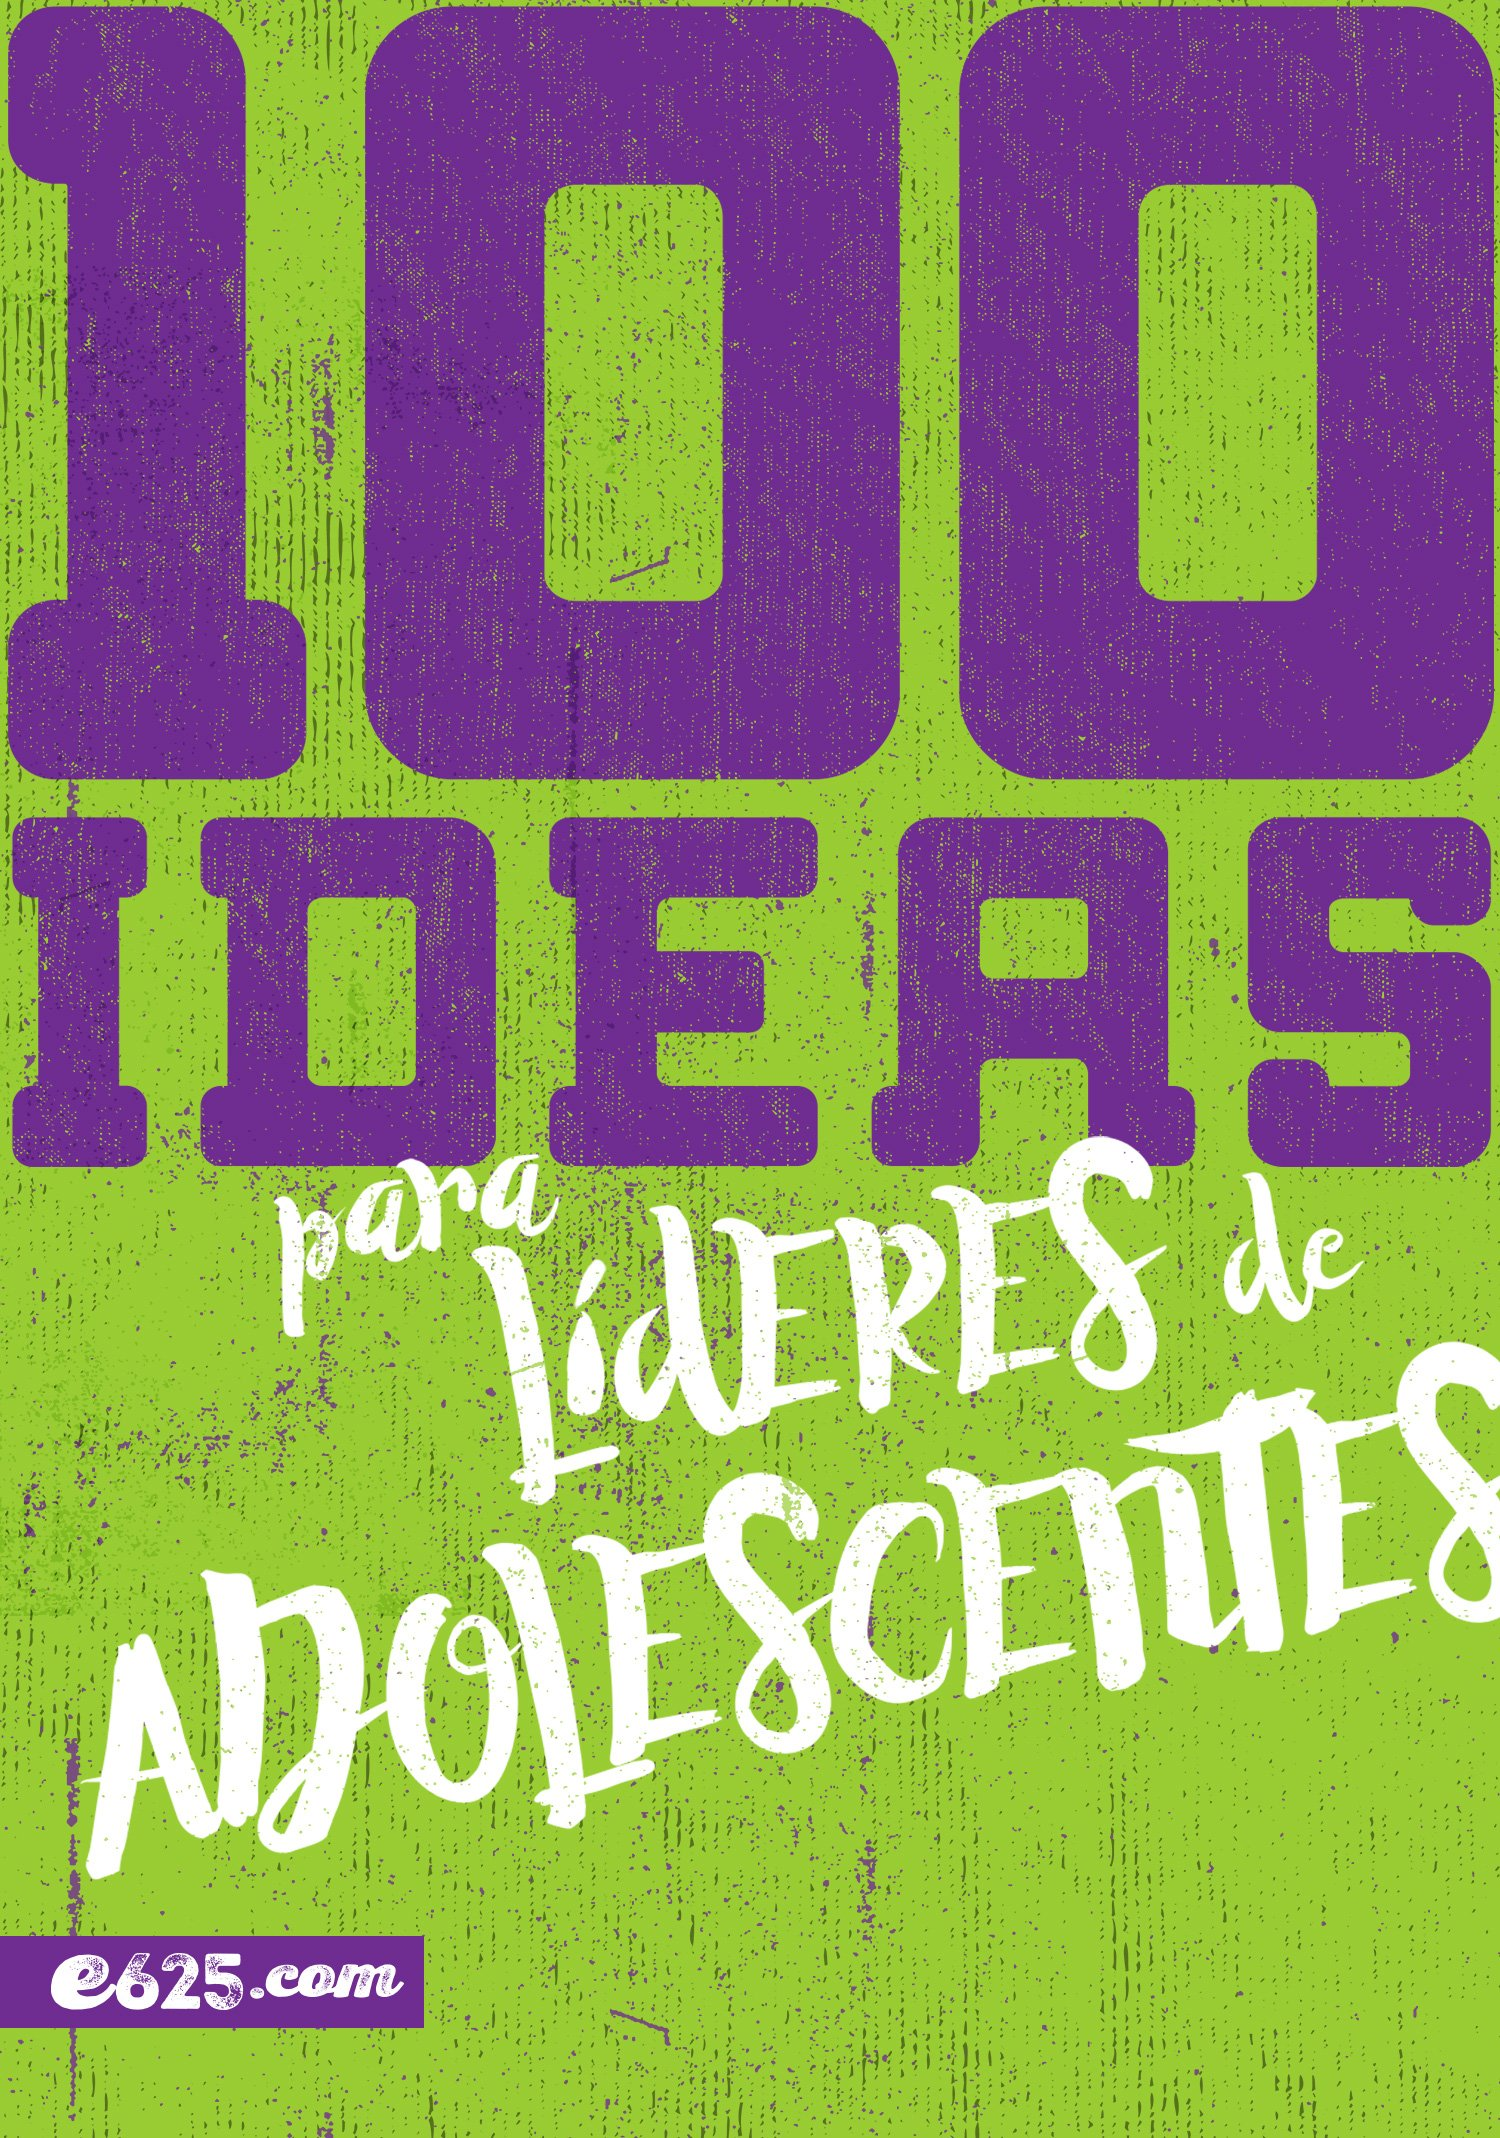 100 ideas para líderes de adolescentes (Spanish Edition): Lucas Leys: 9781946707765: Amazon.com: Books